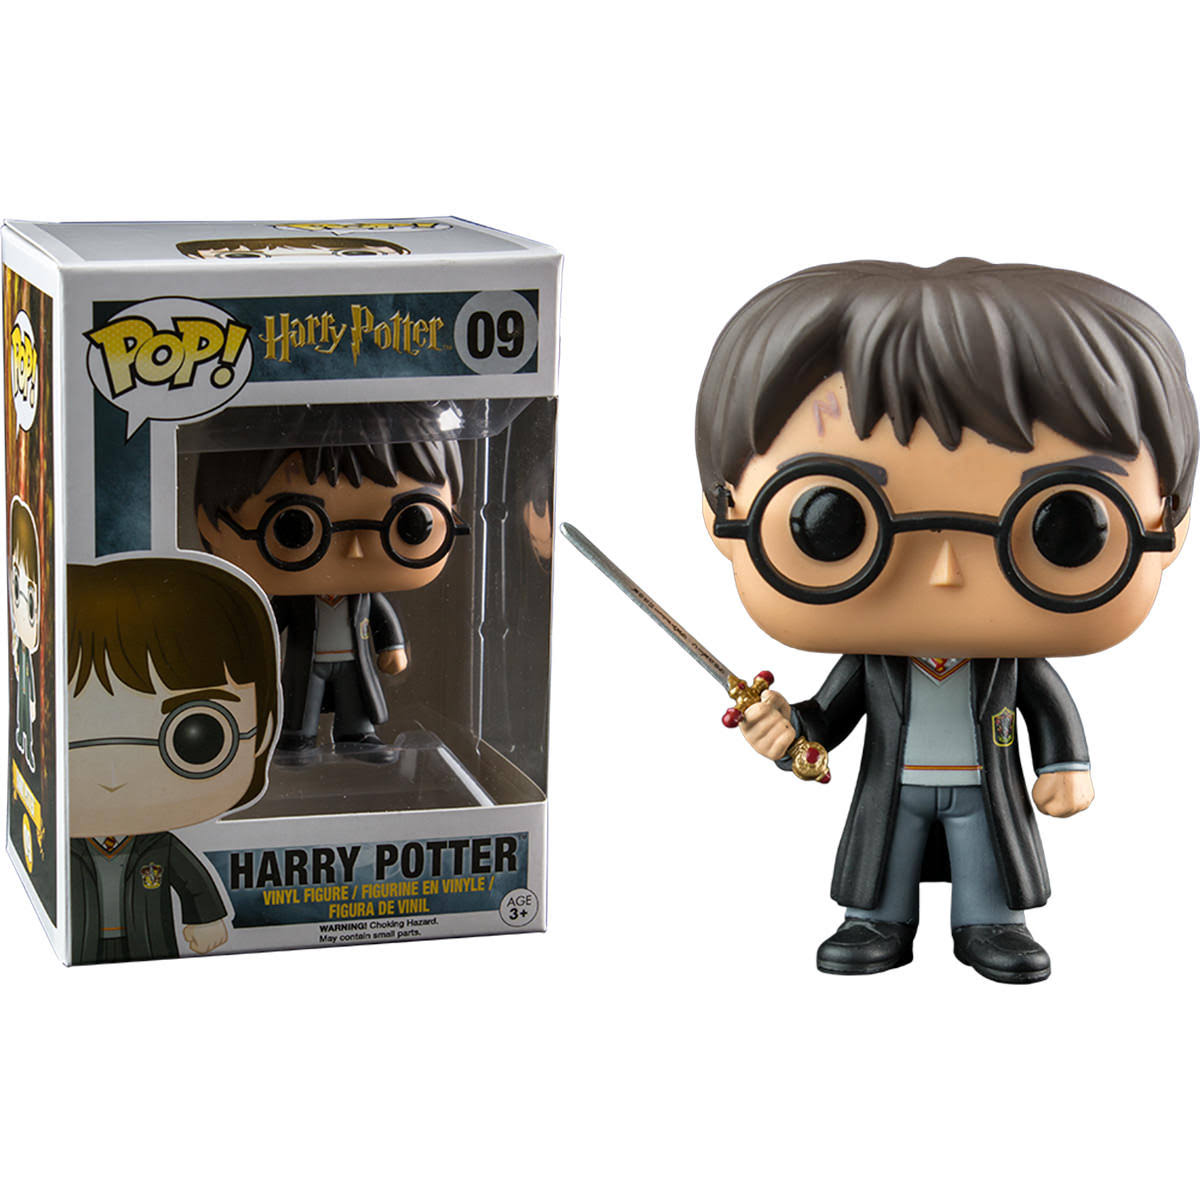 Funko Pop! Harry Potter with Sword Hot Topic Exclusive Vinyl Figure